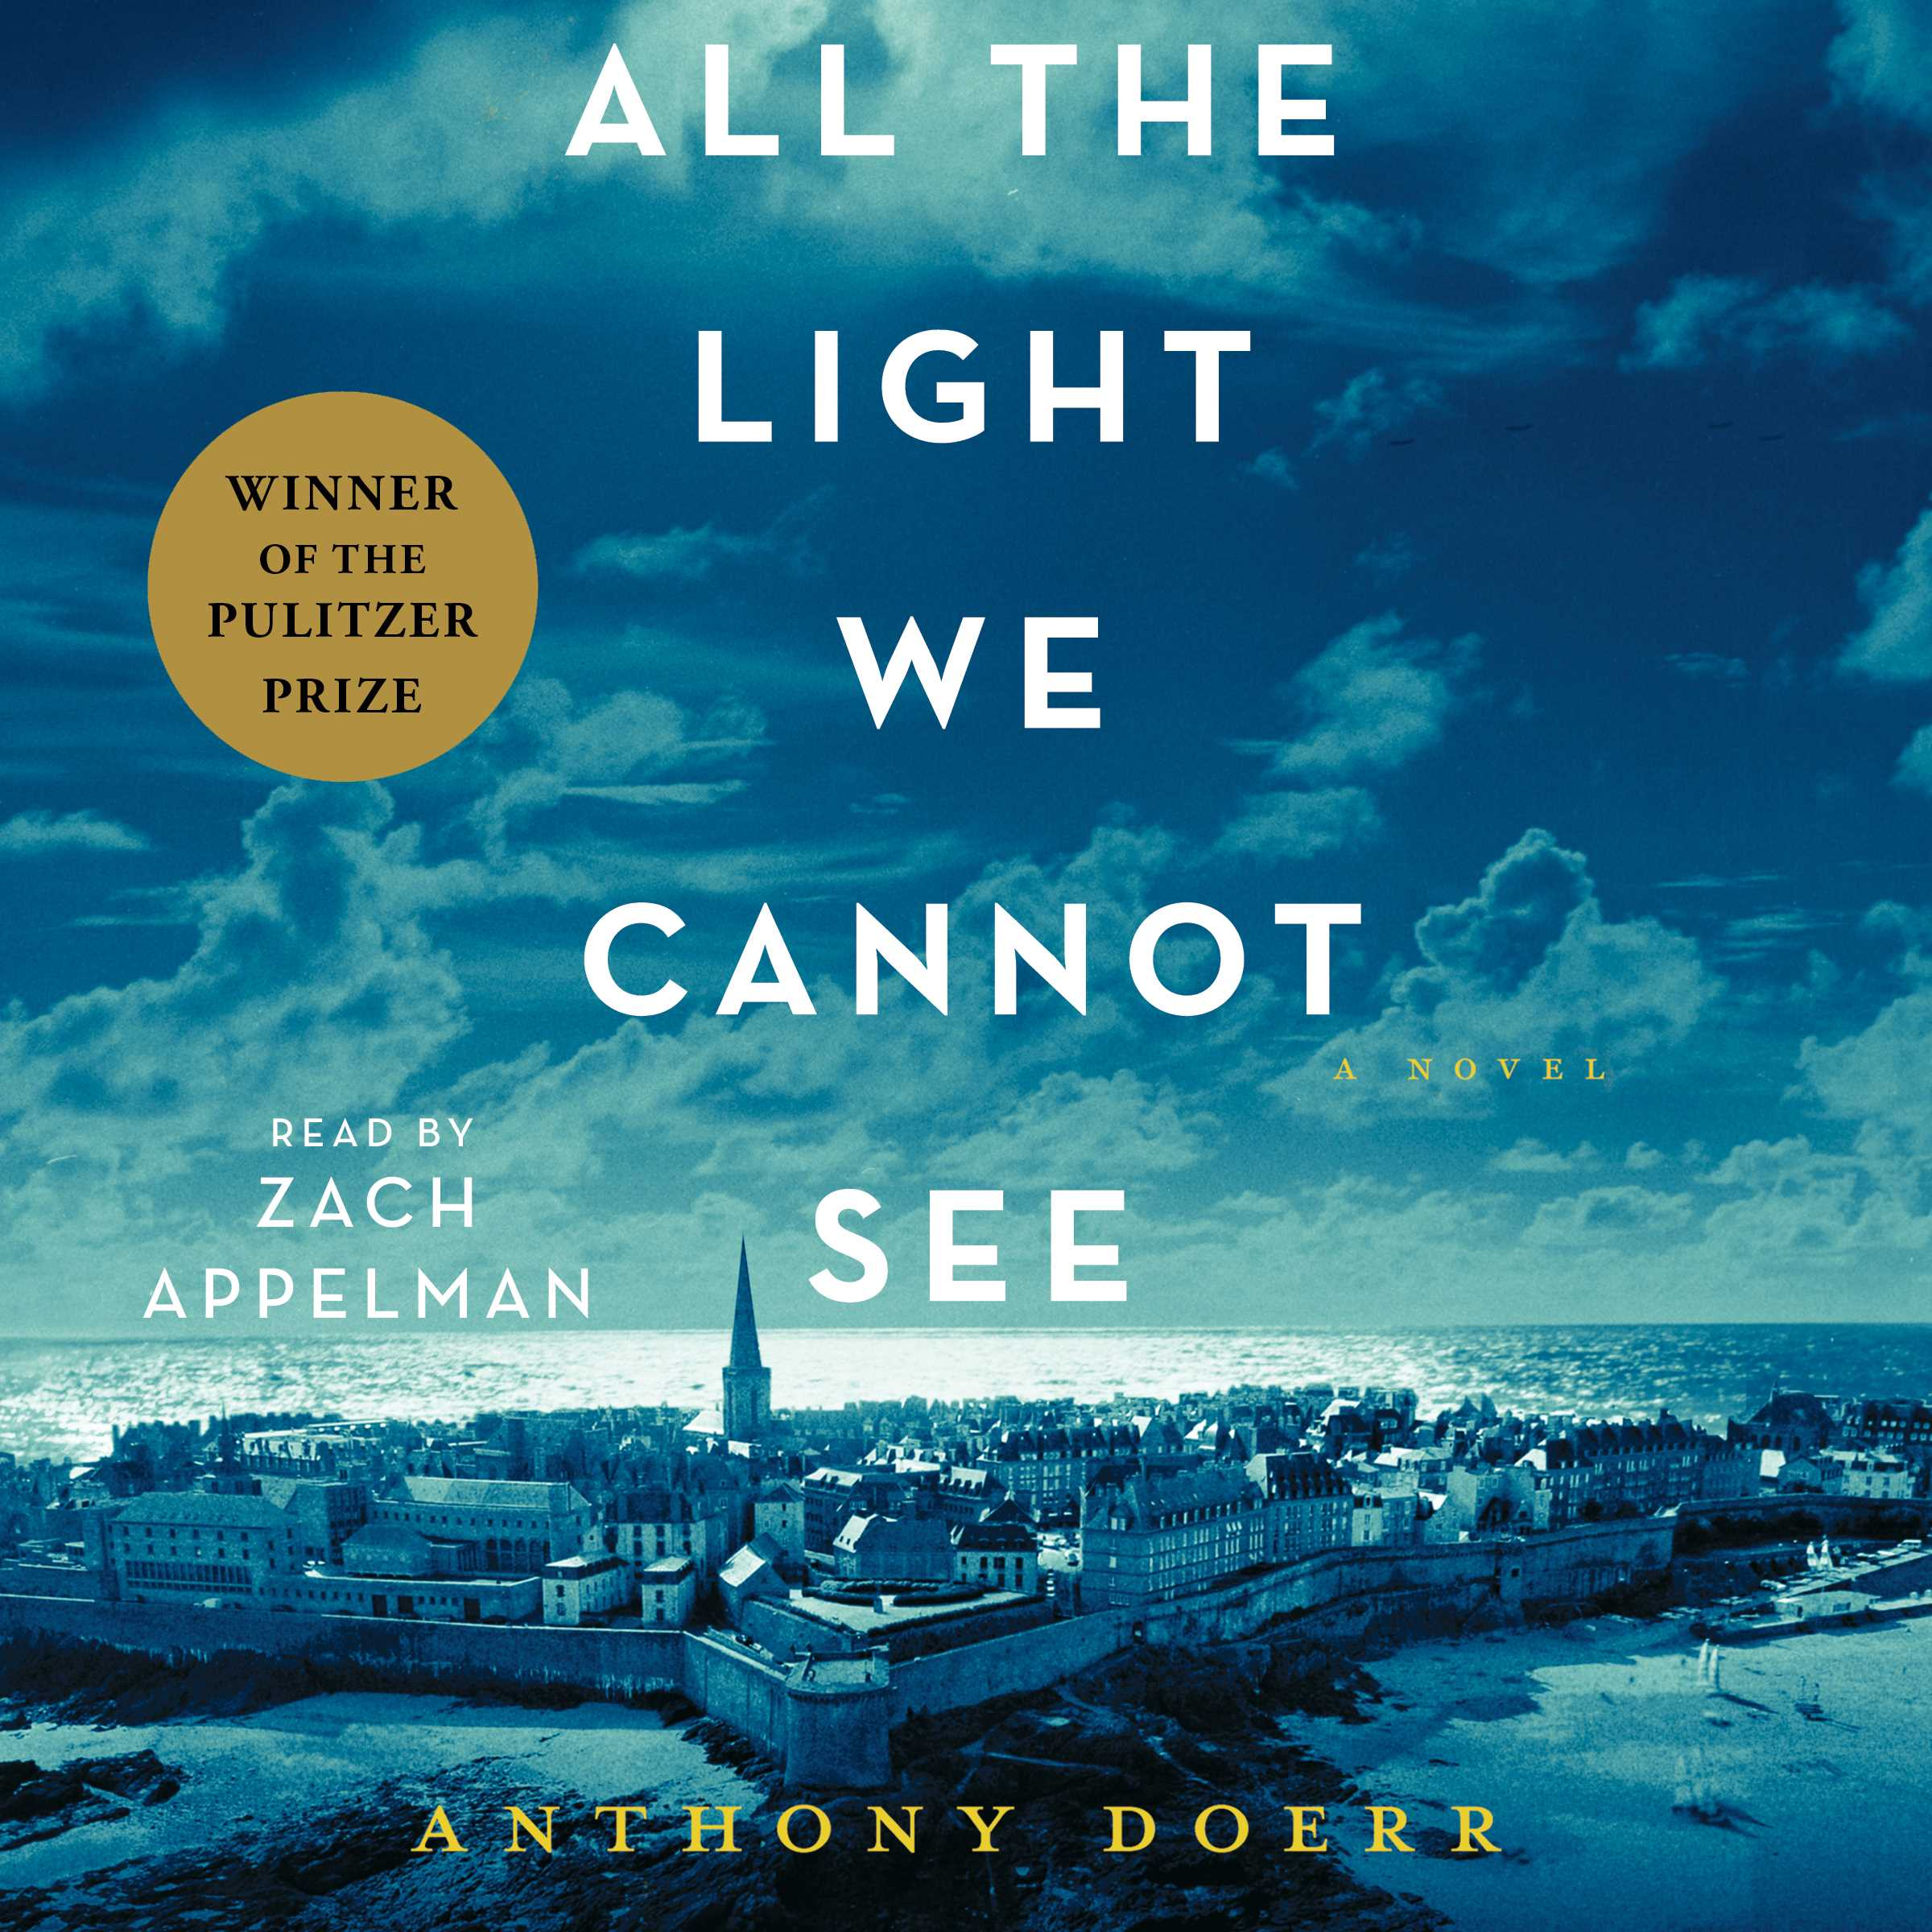 All-the-light-we-cannot-see-9781442369375_hr